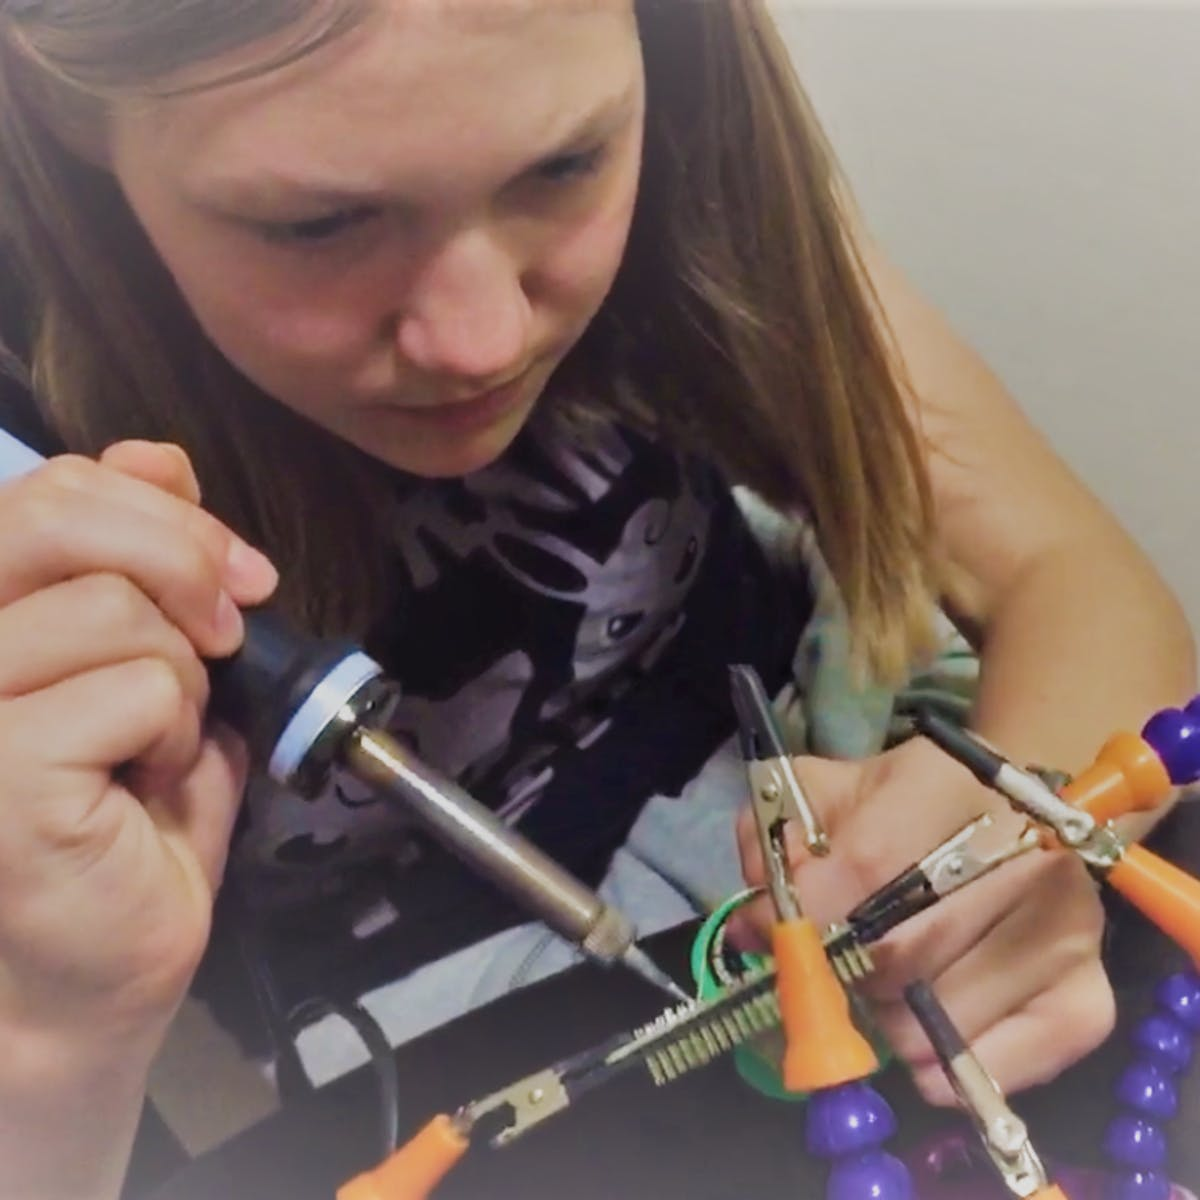 Teen Inventor Allie Weber Is Taking on the World, One Invention at a Time